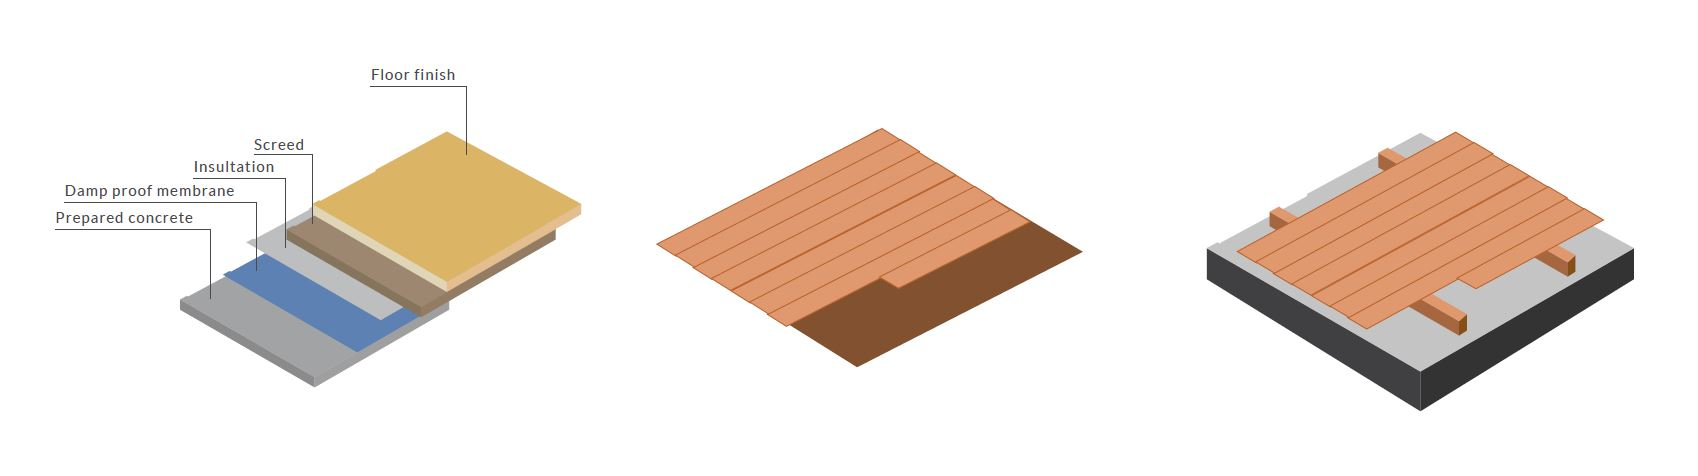 Learn The Basics Of Wood Flooring In 5